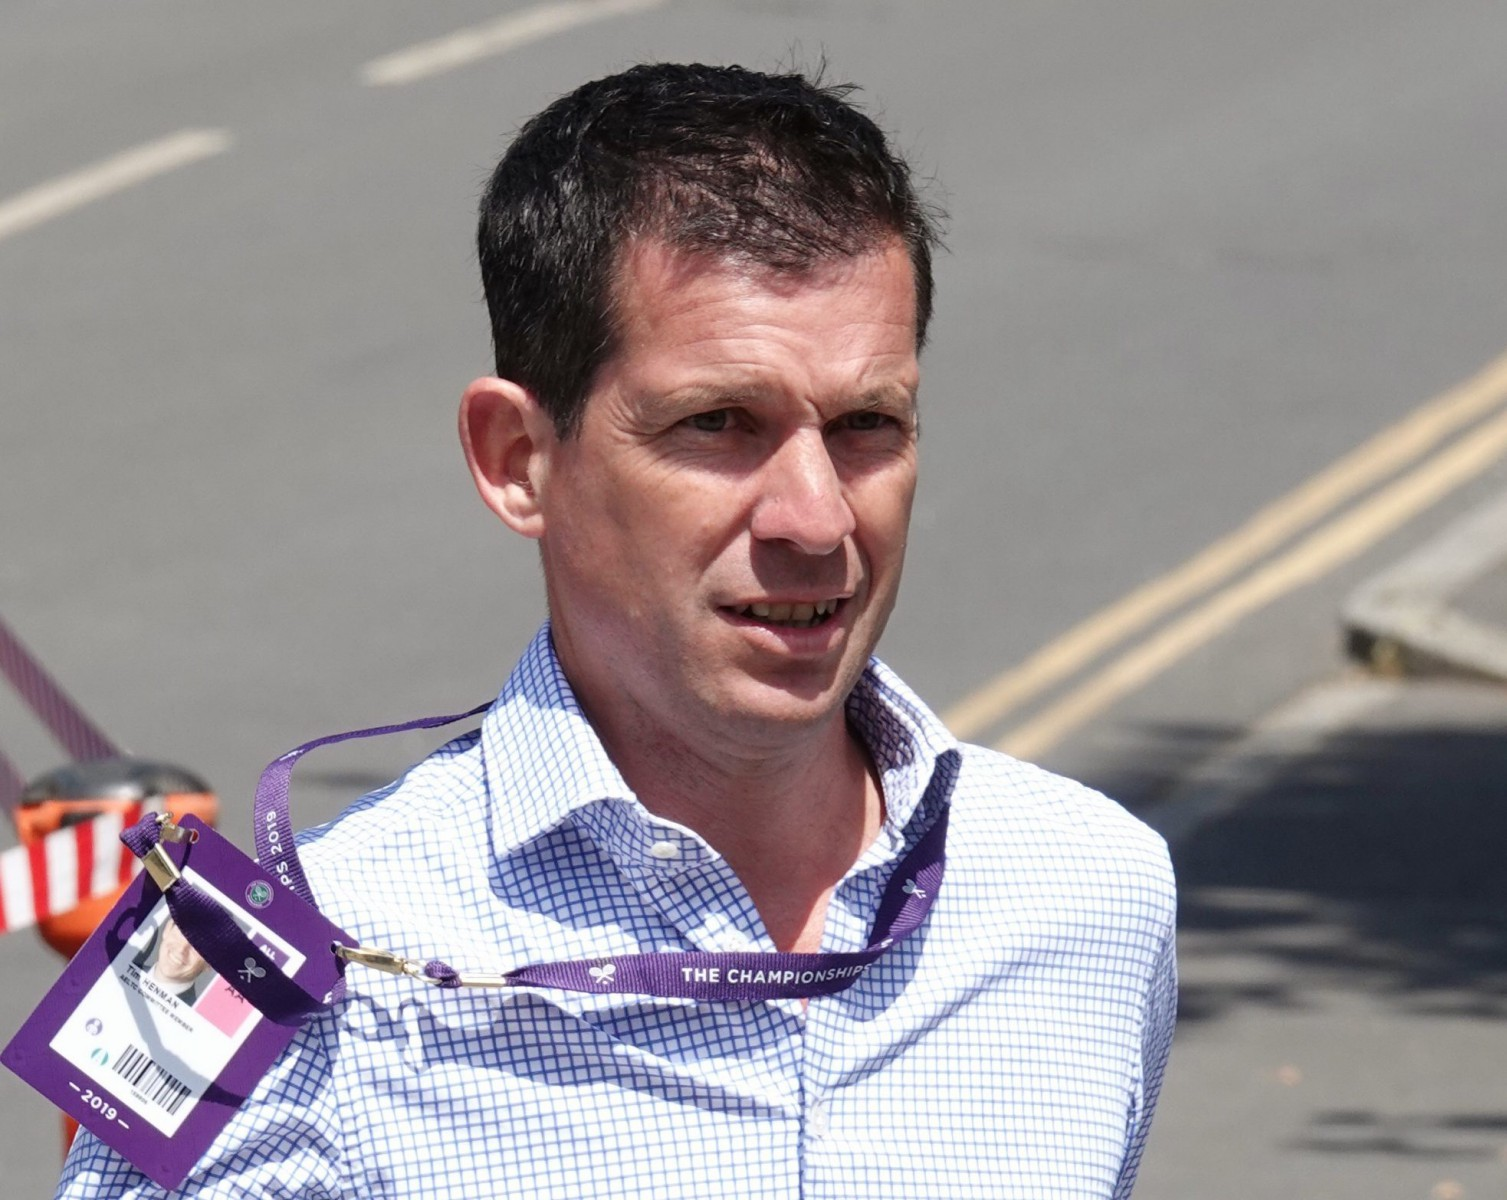 Henman was hand-picked by Andy Murray to lead Great Britain at the inaugural ATP Cup in January